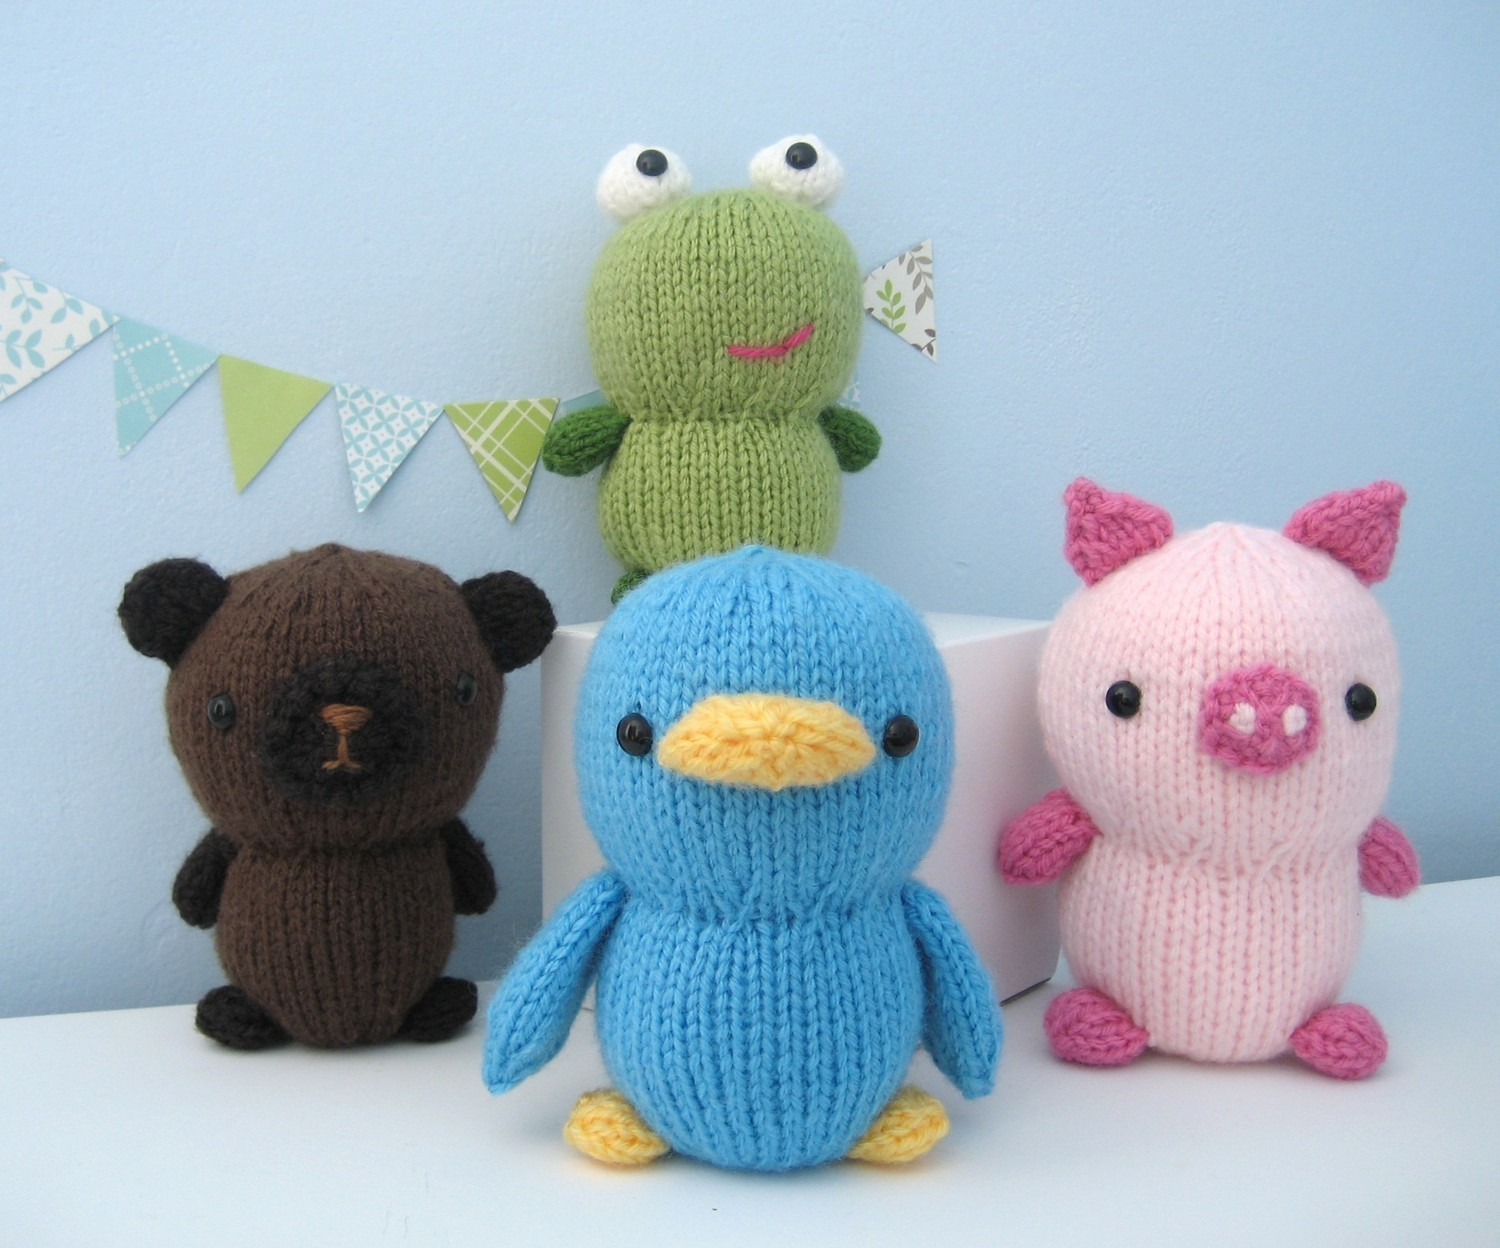 Knitting and Crochet — What is amigurumi knitting? We know ...